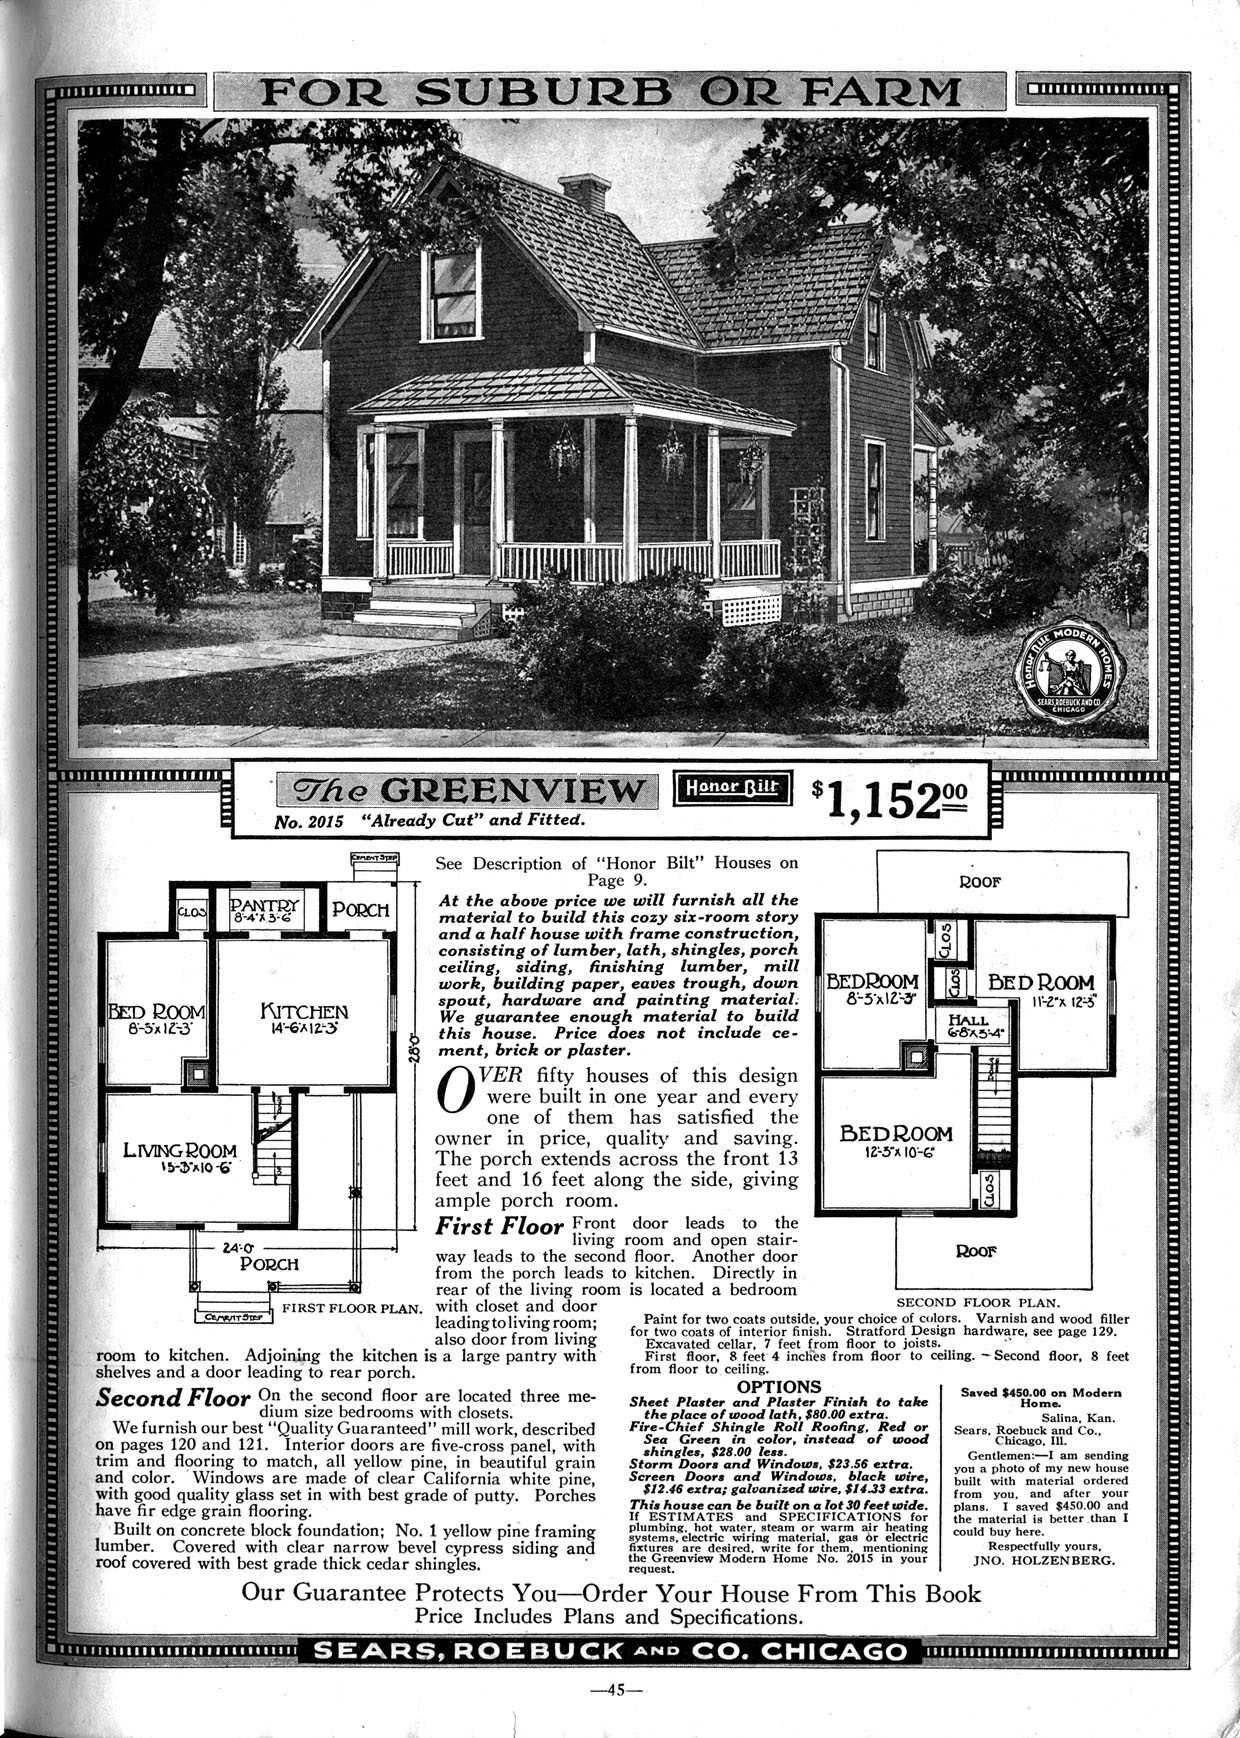 1900 sears house plans searsarchivescom sears homes - Blueprints For Houses